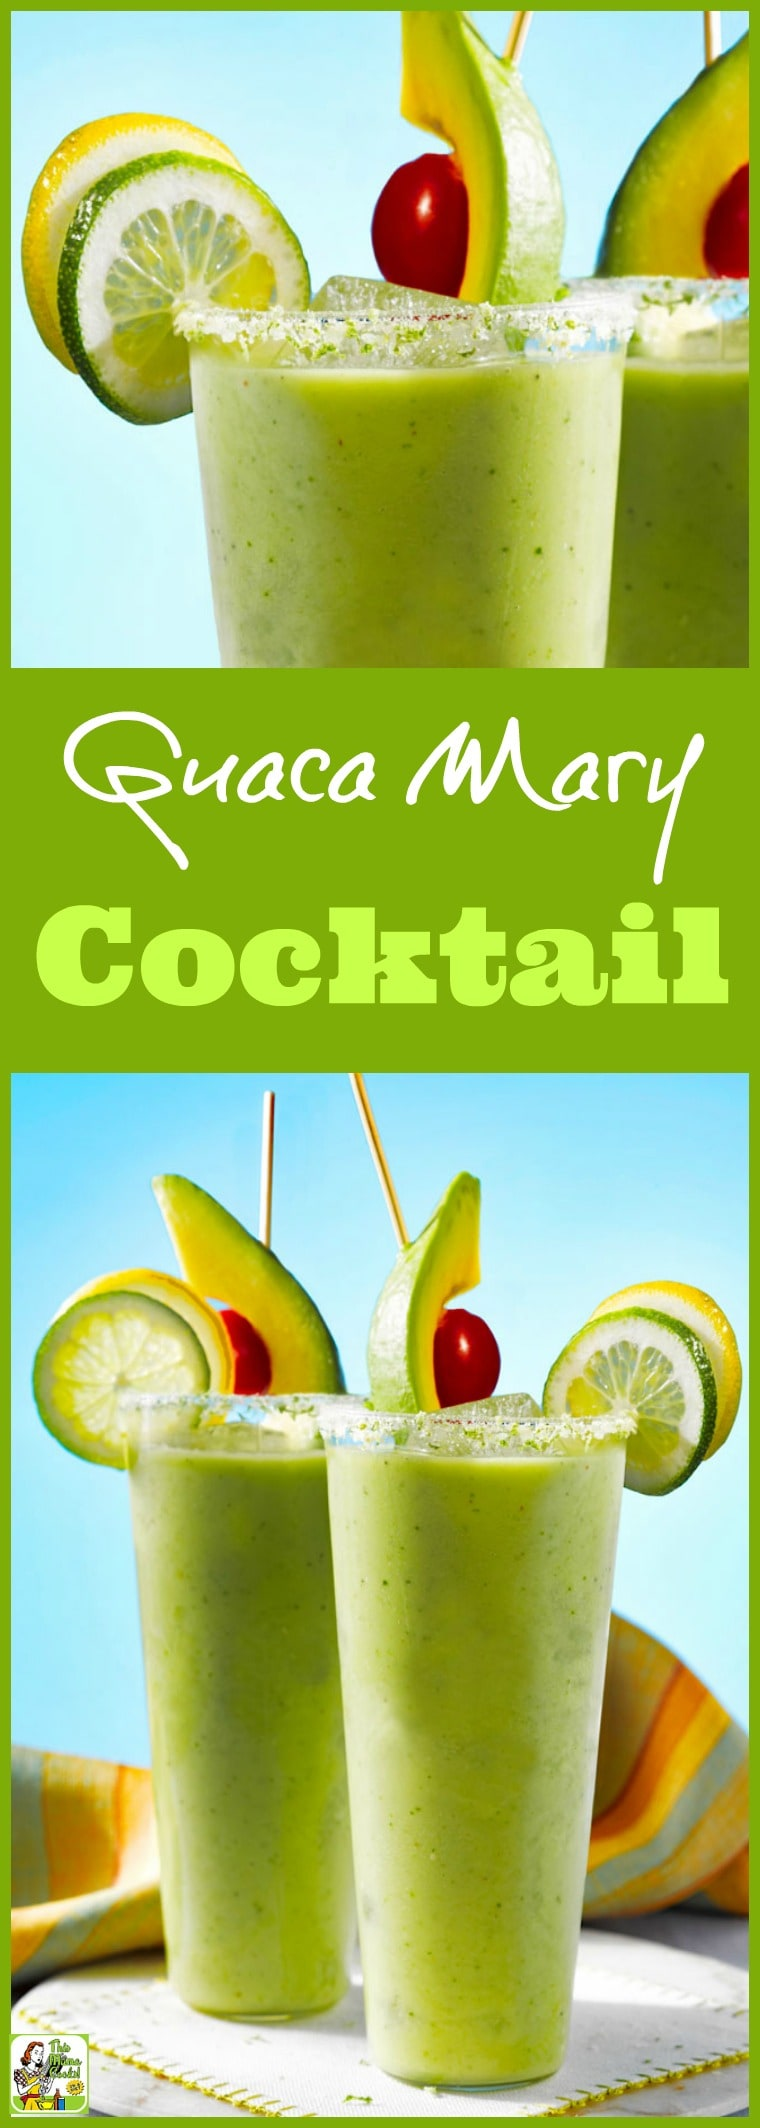 Tired of Bloody Mary's and looking for new Mother's Day drink ideas? Try a Guaca Mary Cocktail. Click to get this easy to make brunch cocktail recipe. Can also be made as a mocktail. This guilt free healthy cocktail or mocktail is made with nutrious avocado, spicy peppers, hydrating coconut water, and Mexican green hot sauce.